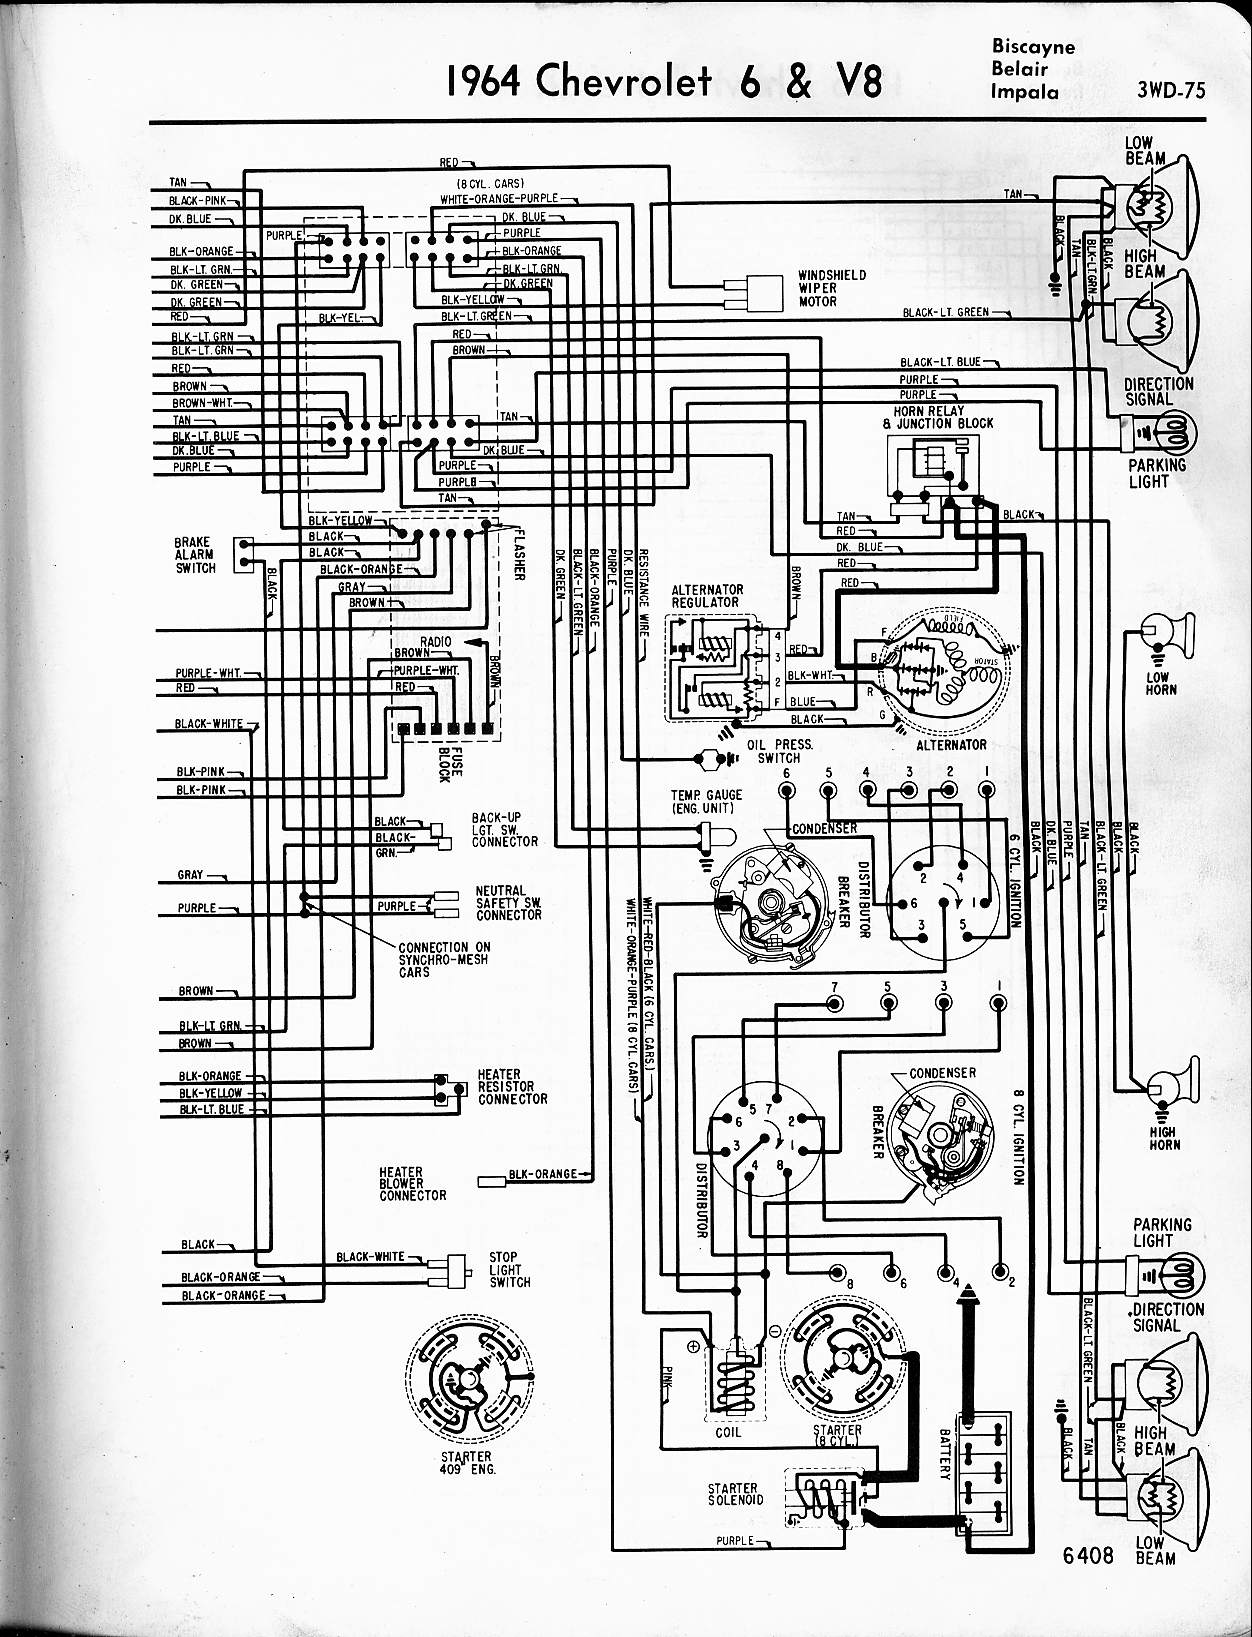 Magnificent Bmw Hp2 Wiring Diagram Wiring Diagram Wiring Cloud Onicaxeromohammedshrineorg